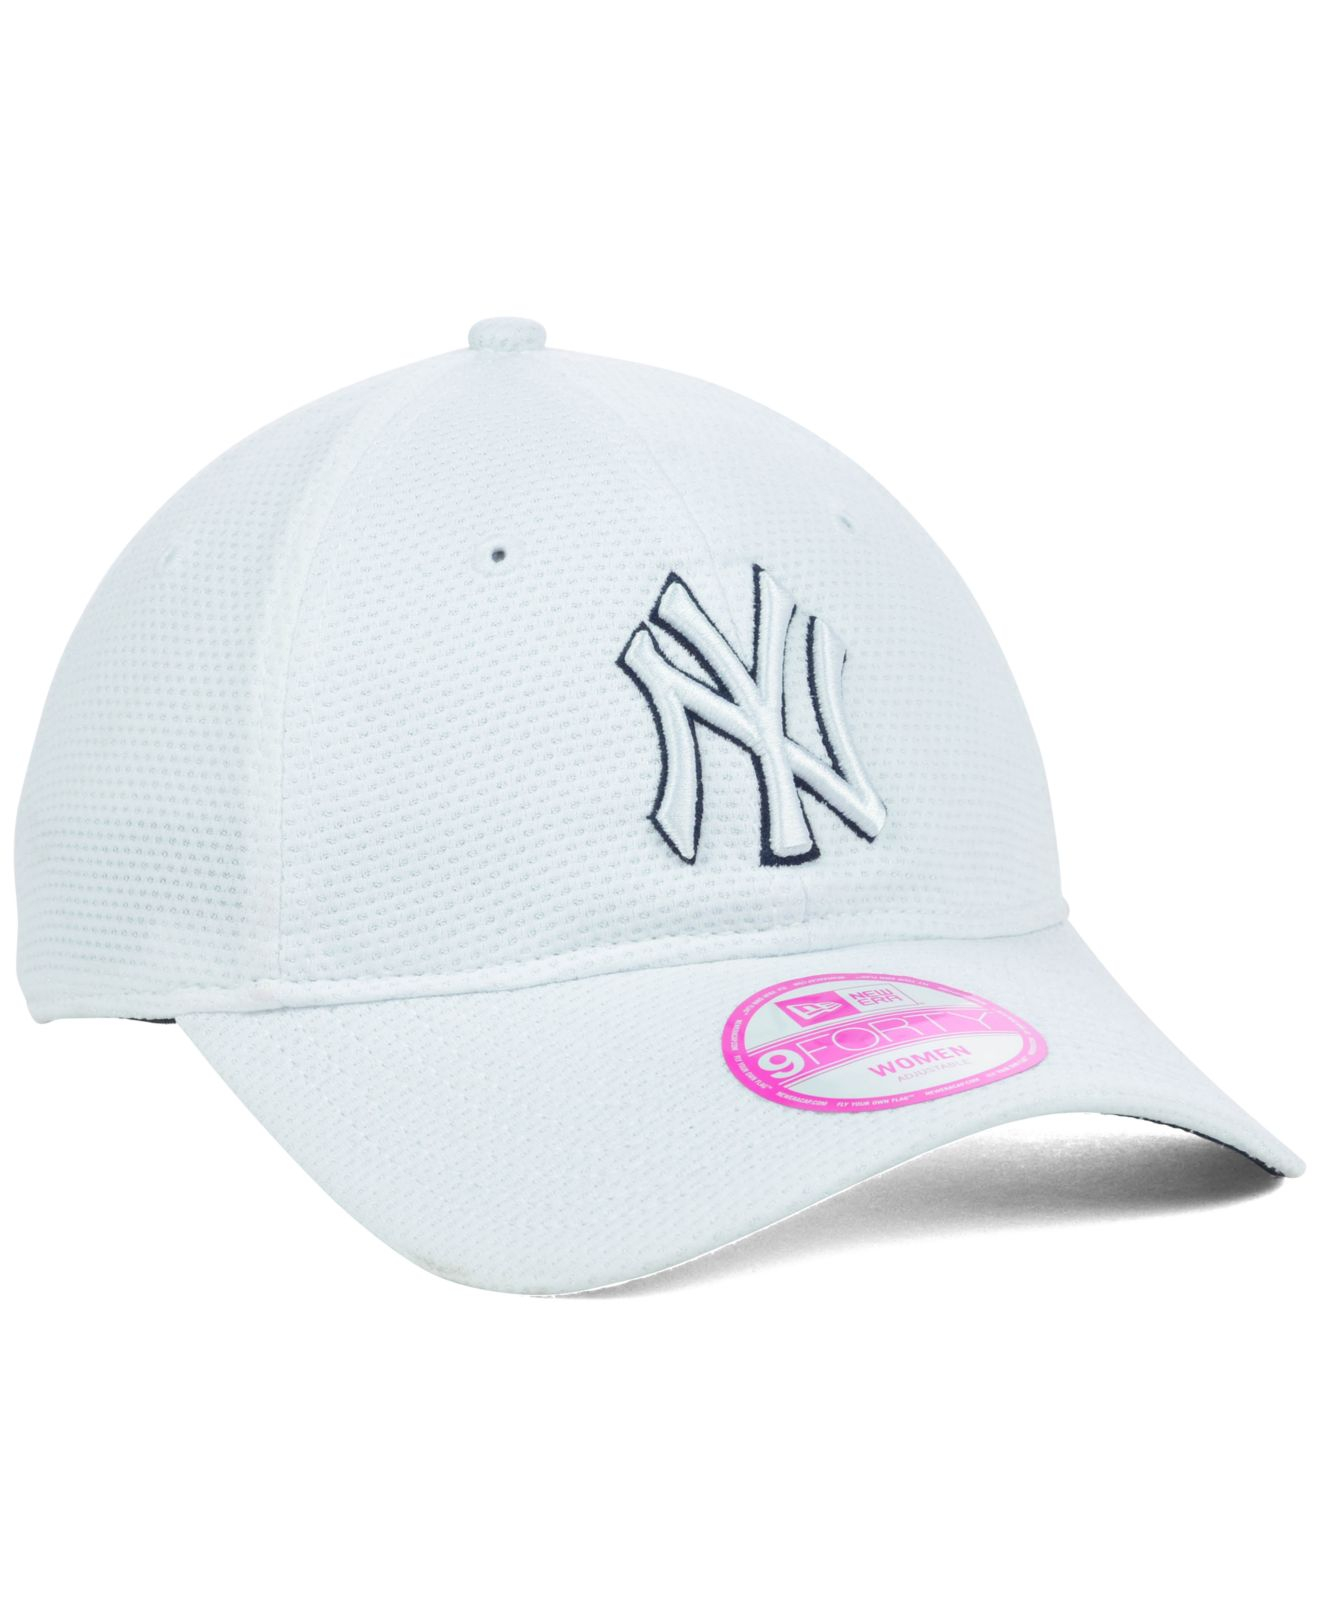 Lyst - KTZ Women S New York Yankees Tech Essential 9Forty Cap in White 67f261a569f